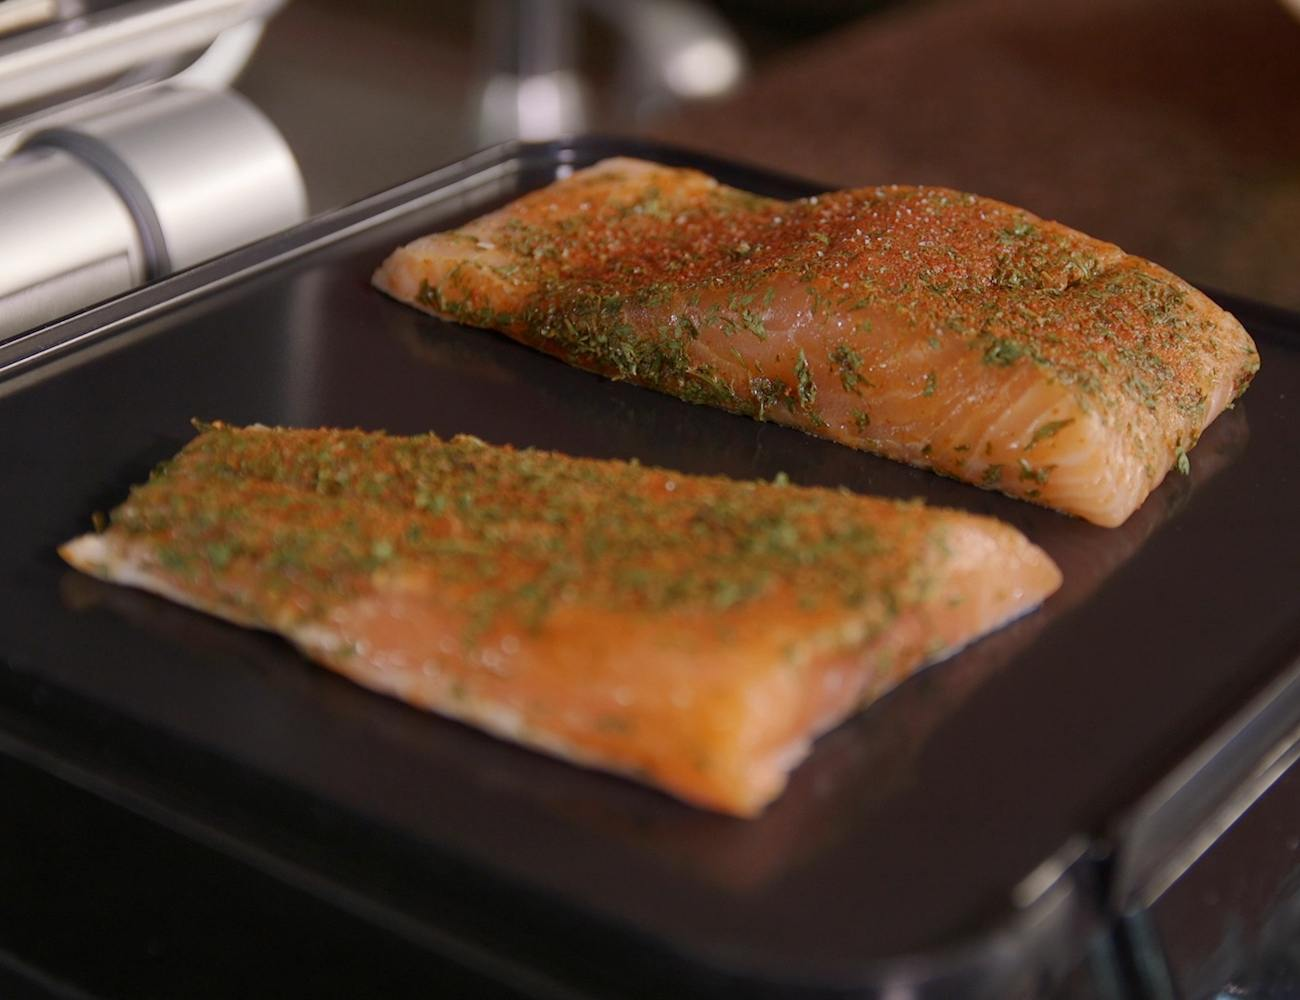 Cinder Grill – Perfect Steak and Salmon